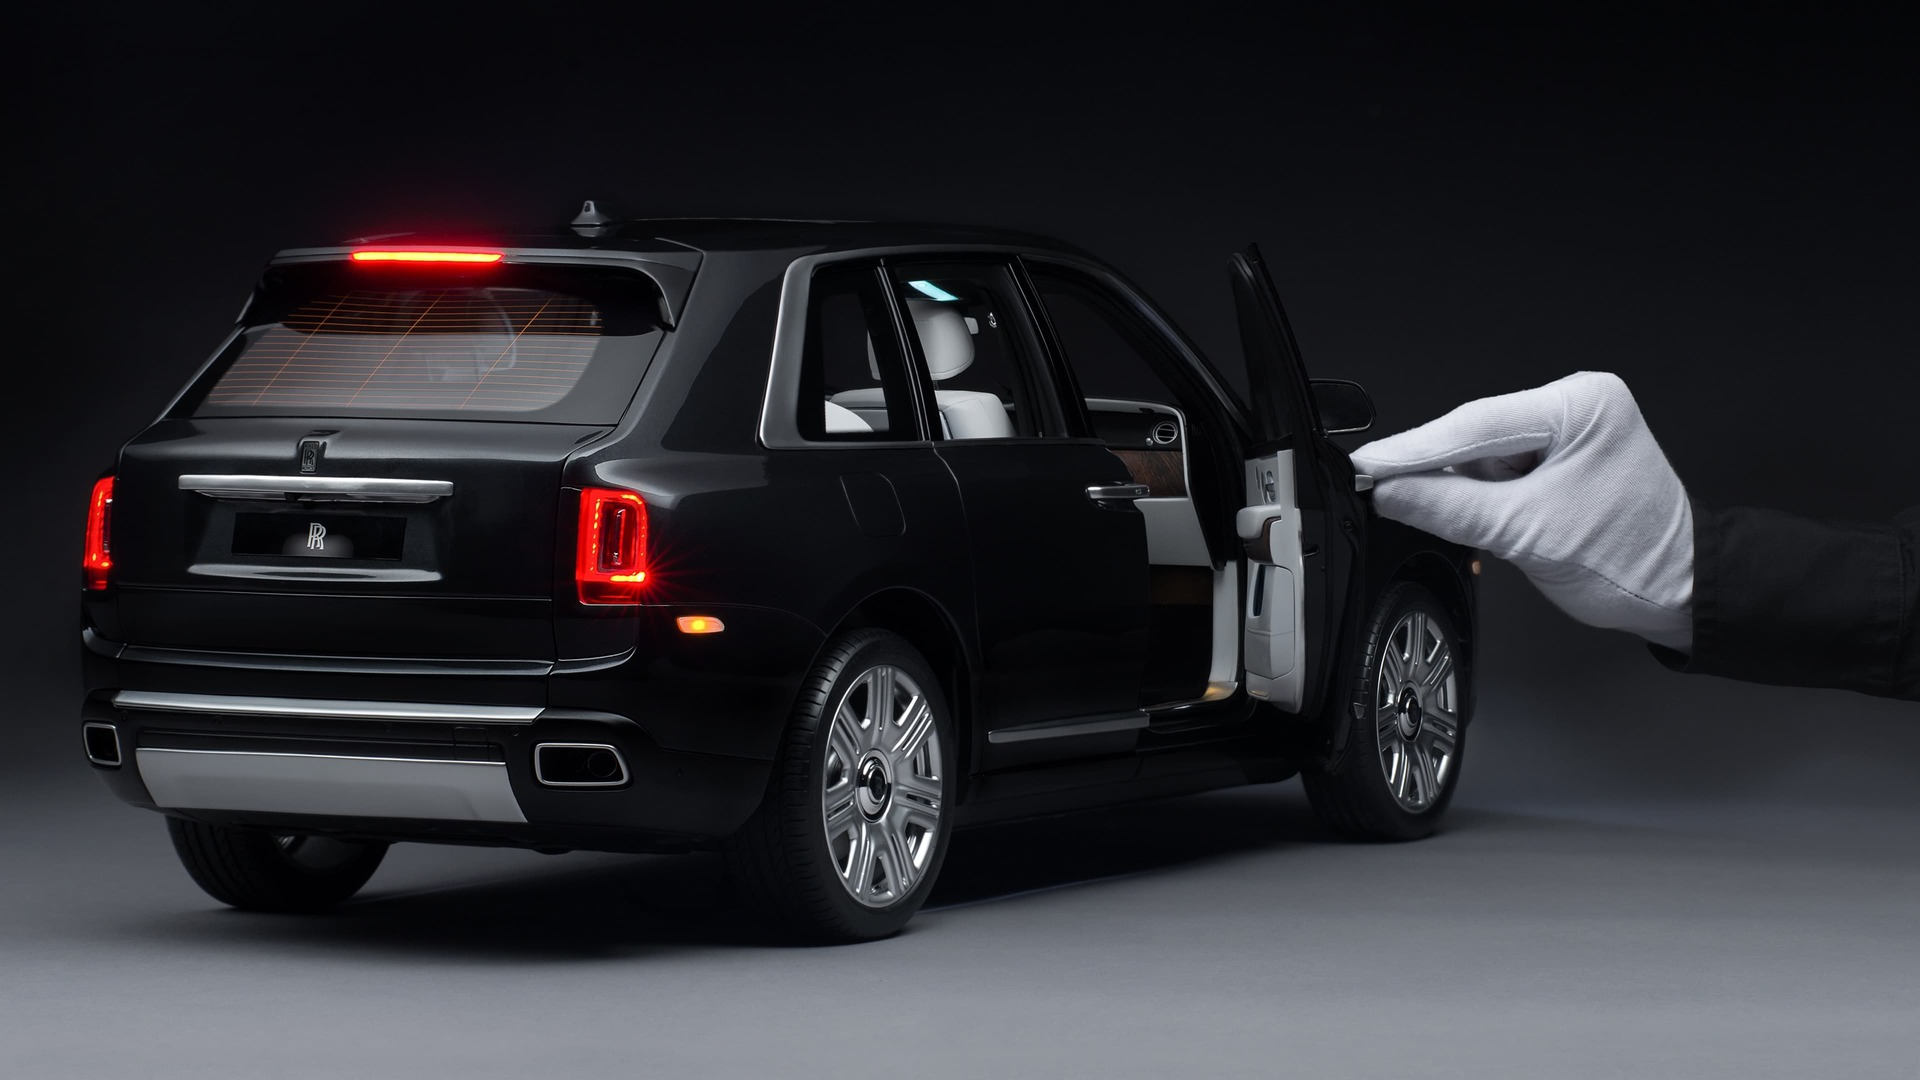 1:8 scale model of the Rolls-Royce Cullinan motor car with hand holding door open